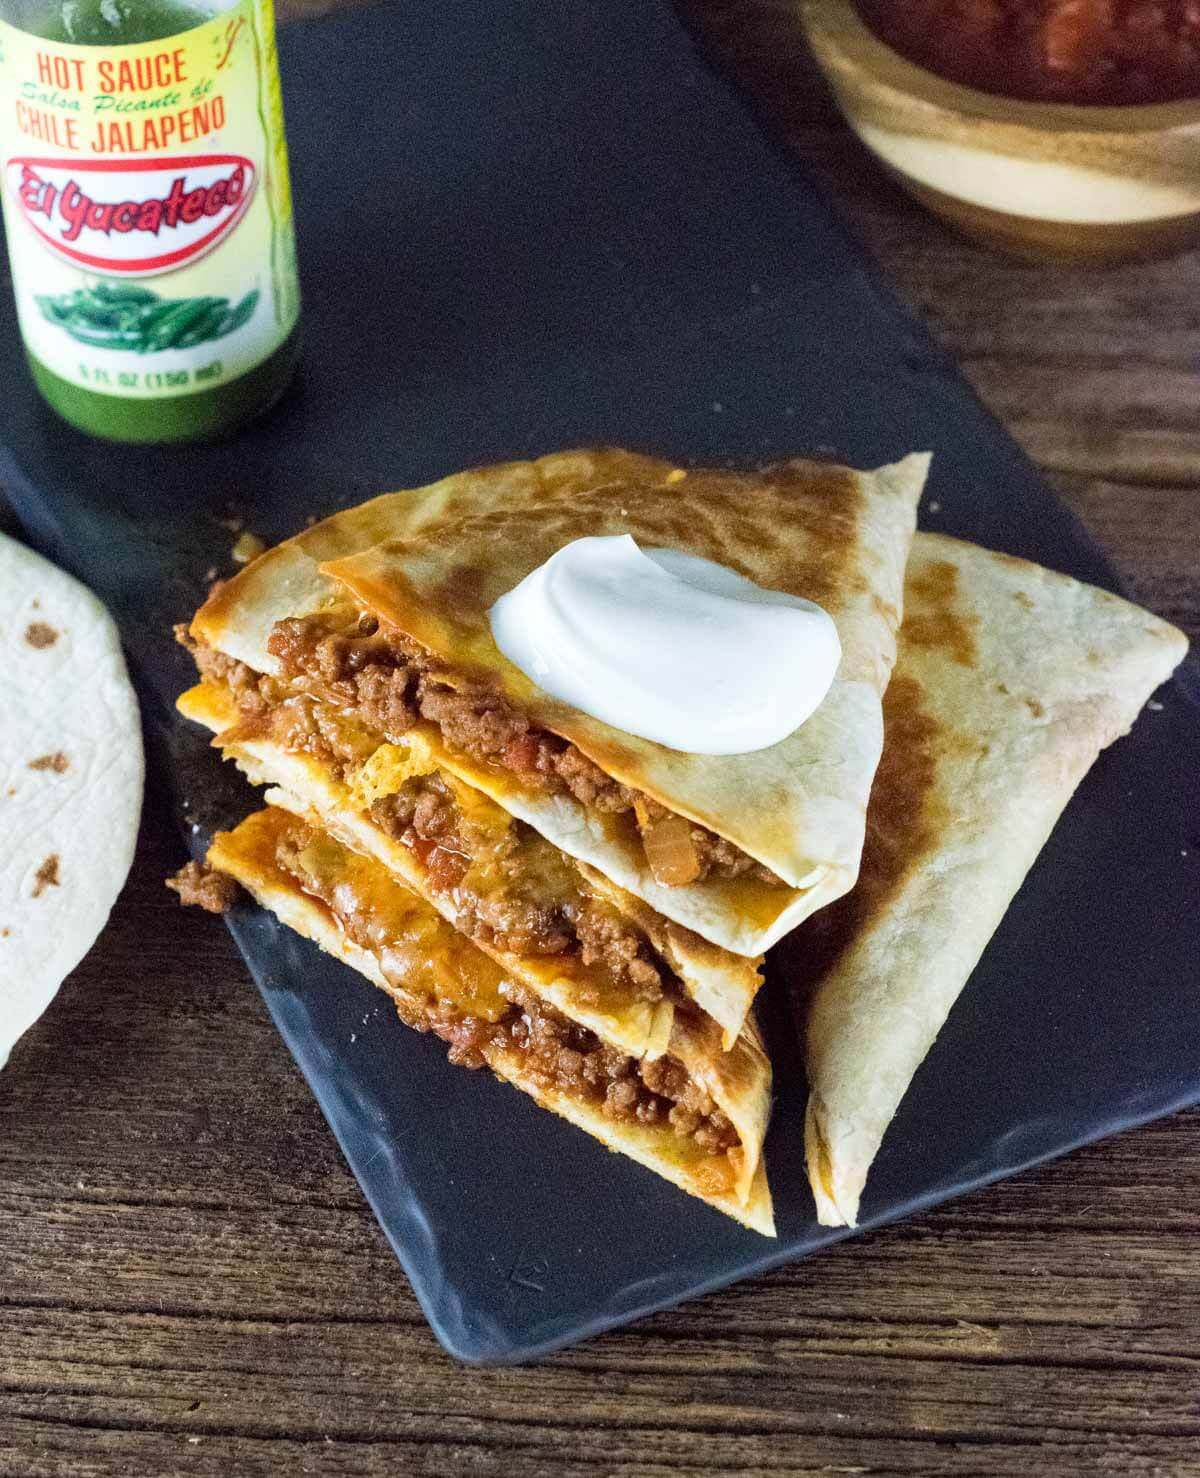 Ground beef quesadillas stacked on top of each other and topped with sour cream.